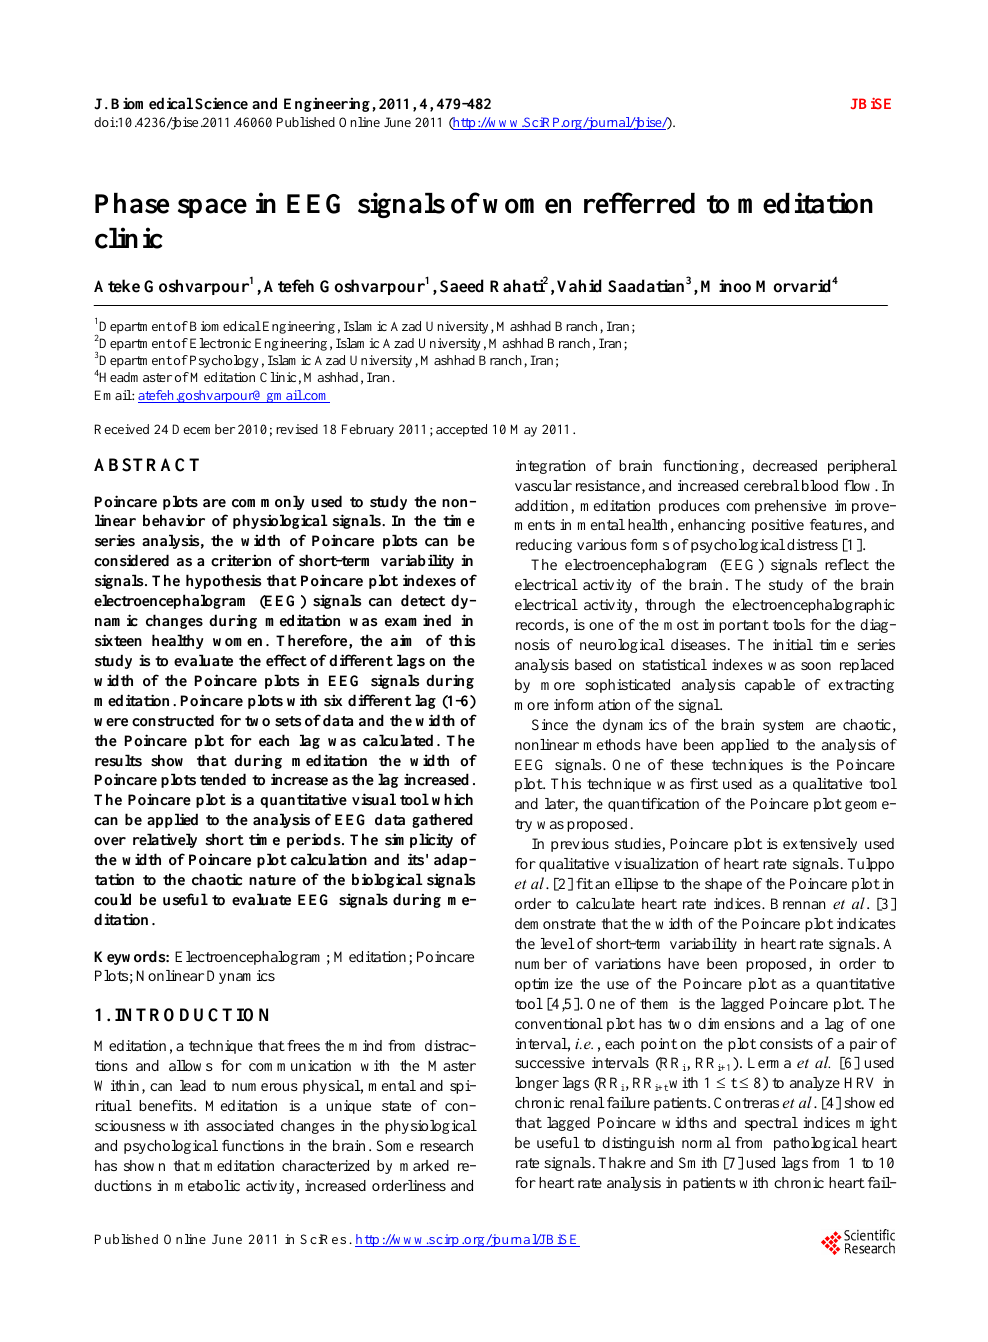 Phase space in EEG signals of women refferred to meditation